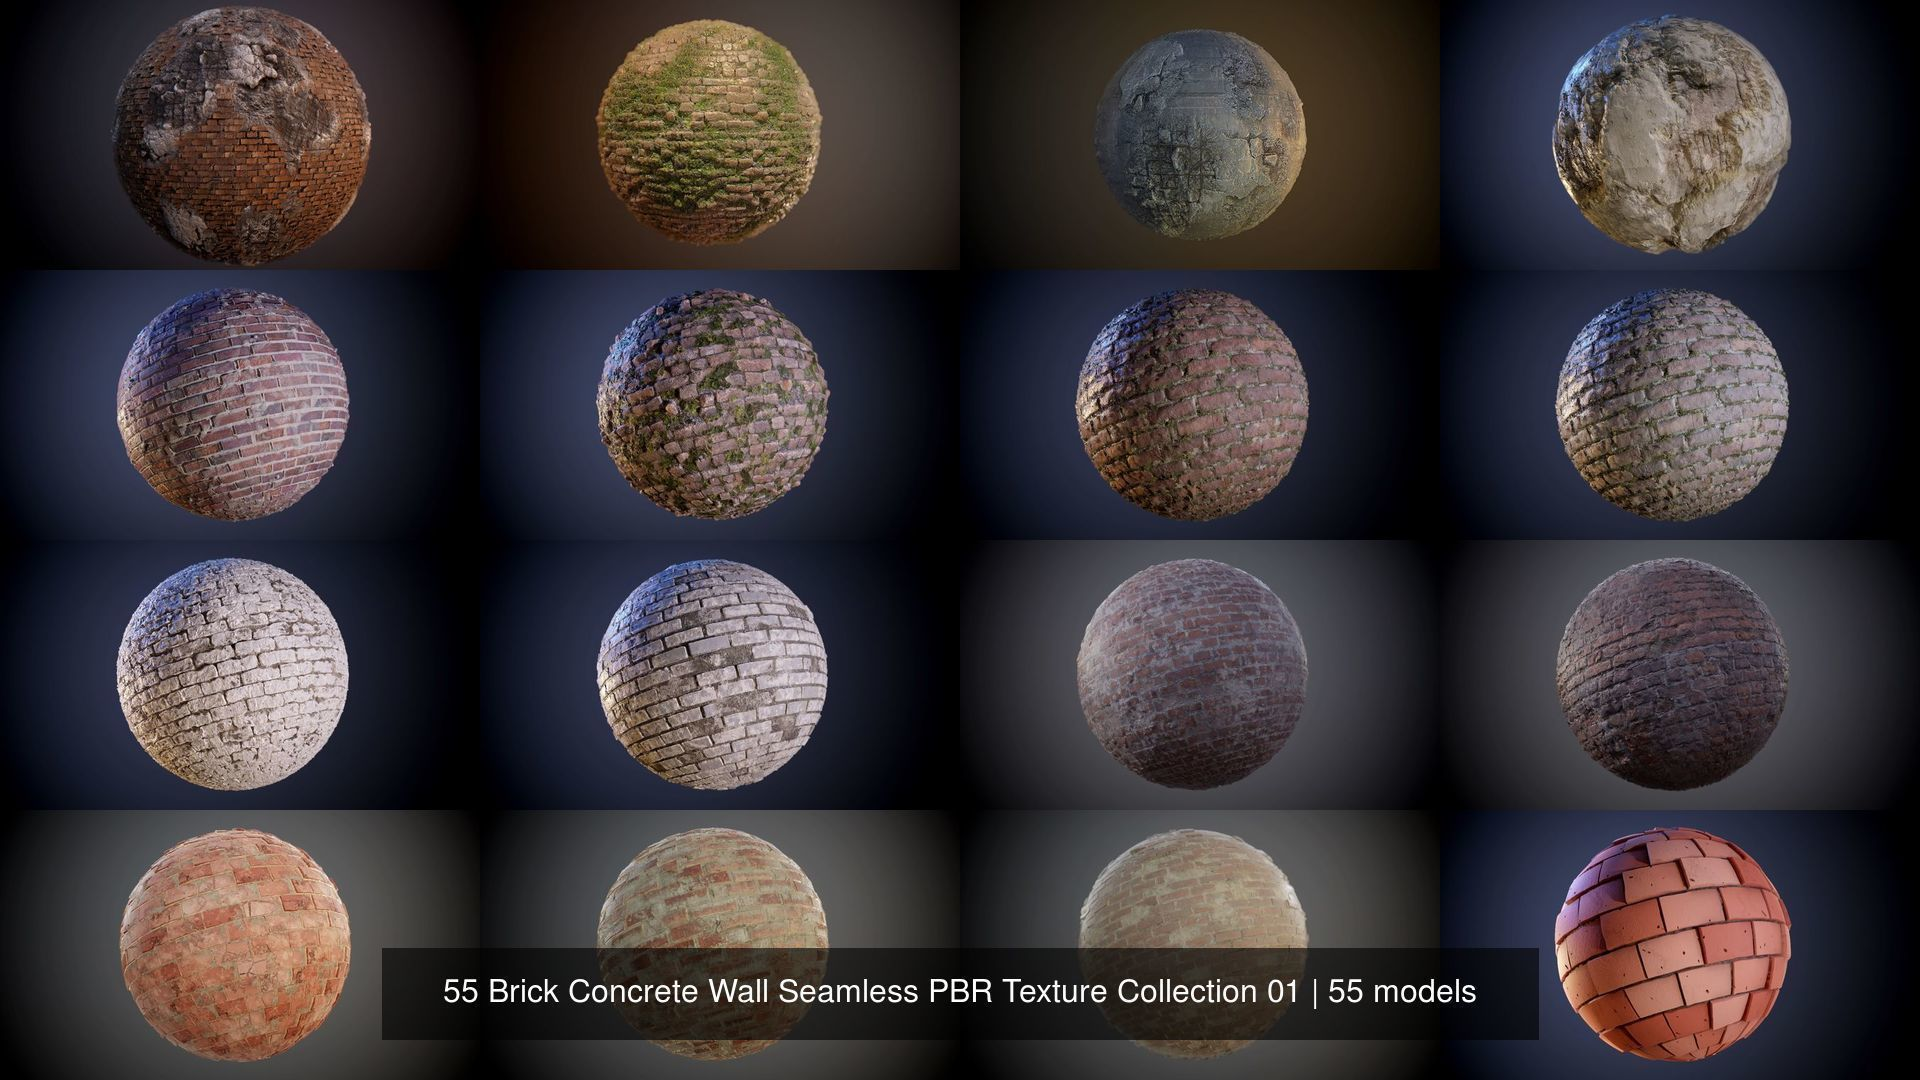 55 Brick Concrete Wall Seamless PBR Texture Collection 01